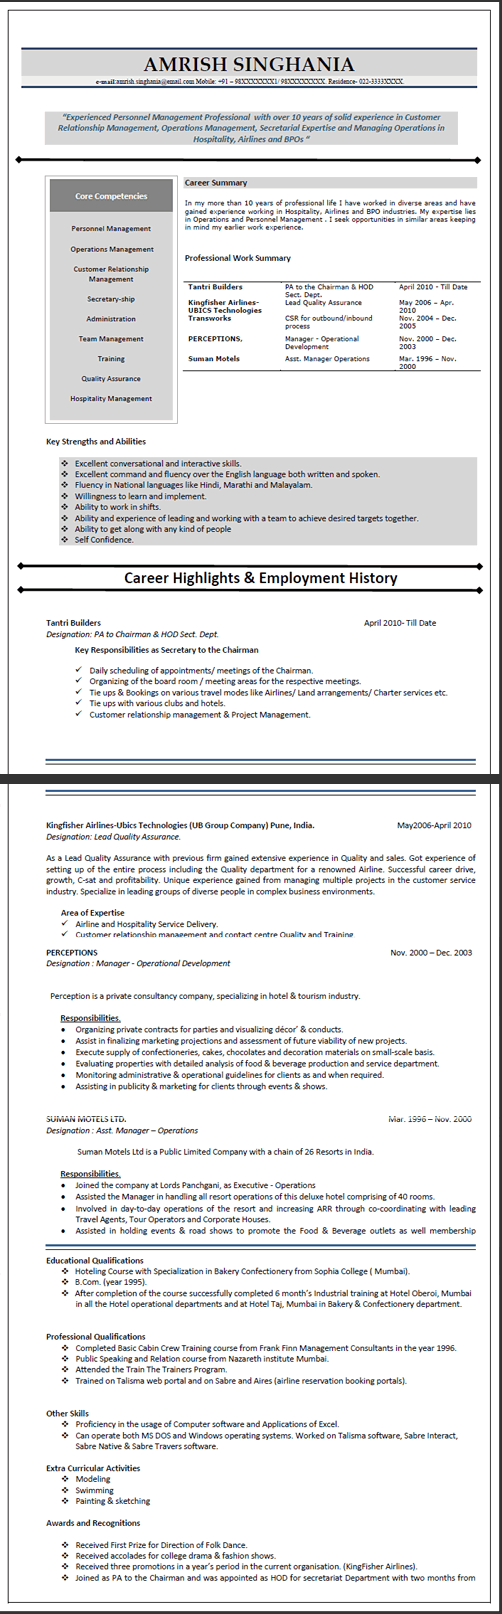 writing a resume government of canada resume preparation pdf resume samples types of resume formats examples